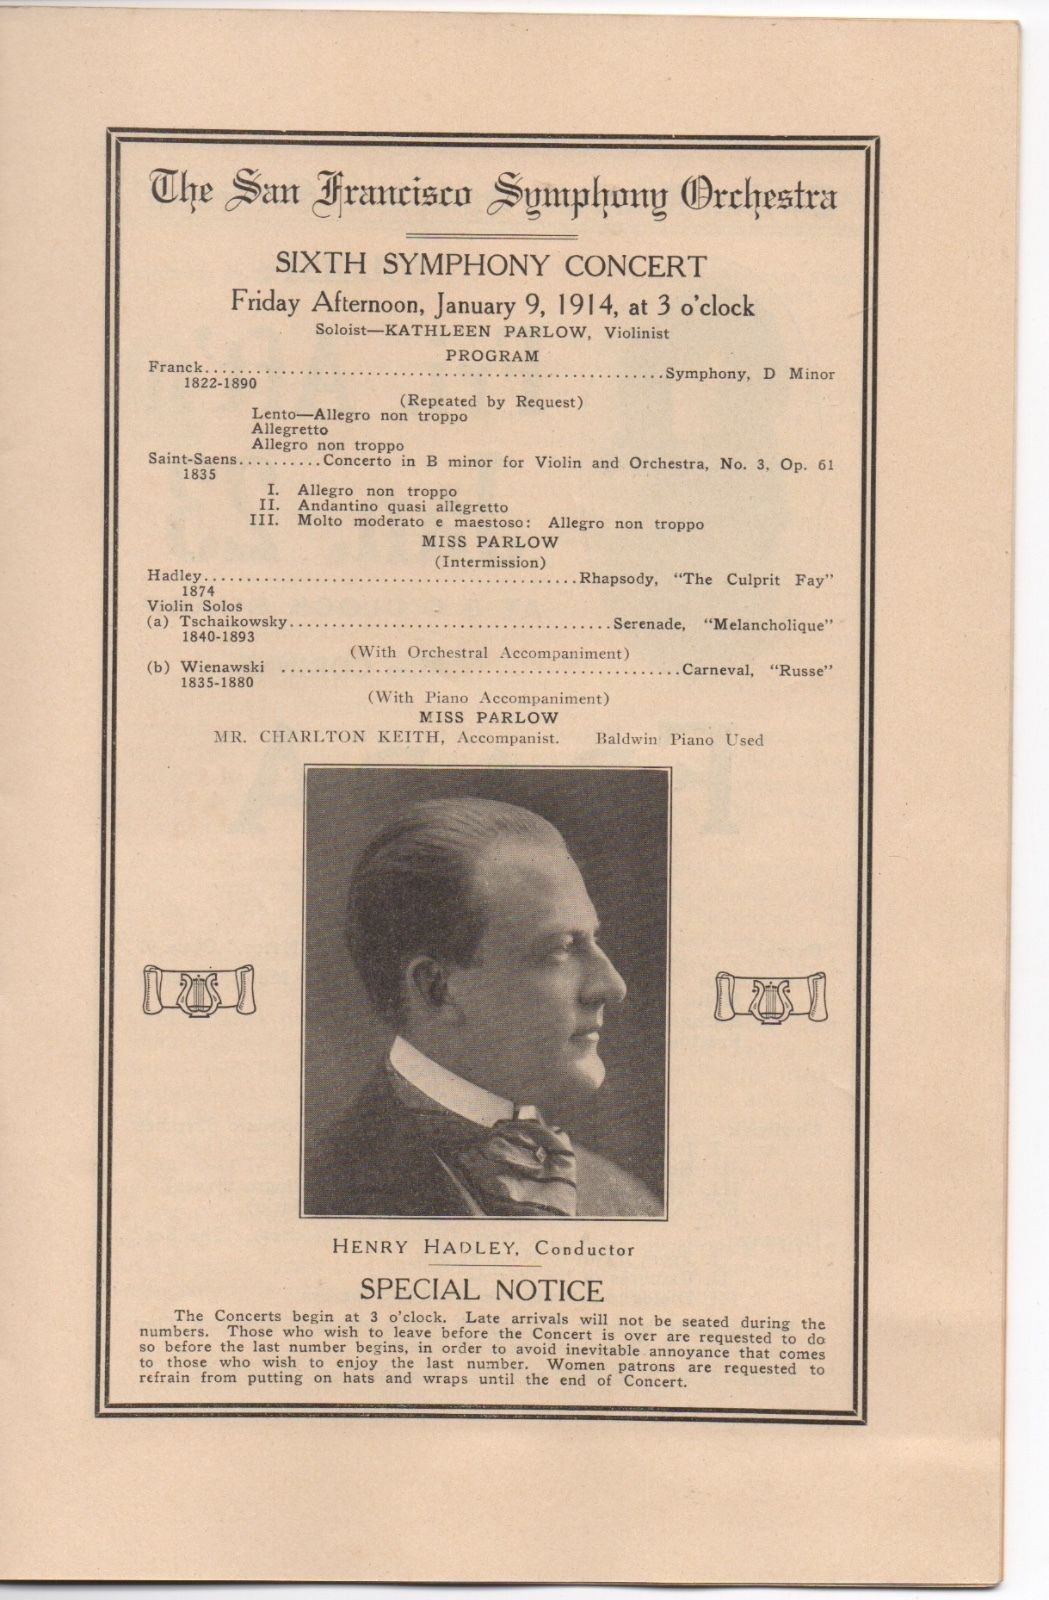 1913 Program from the 3rd Season of the San Francisco Symphony Orchestra